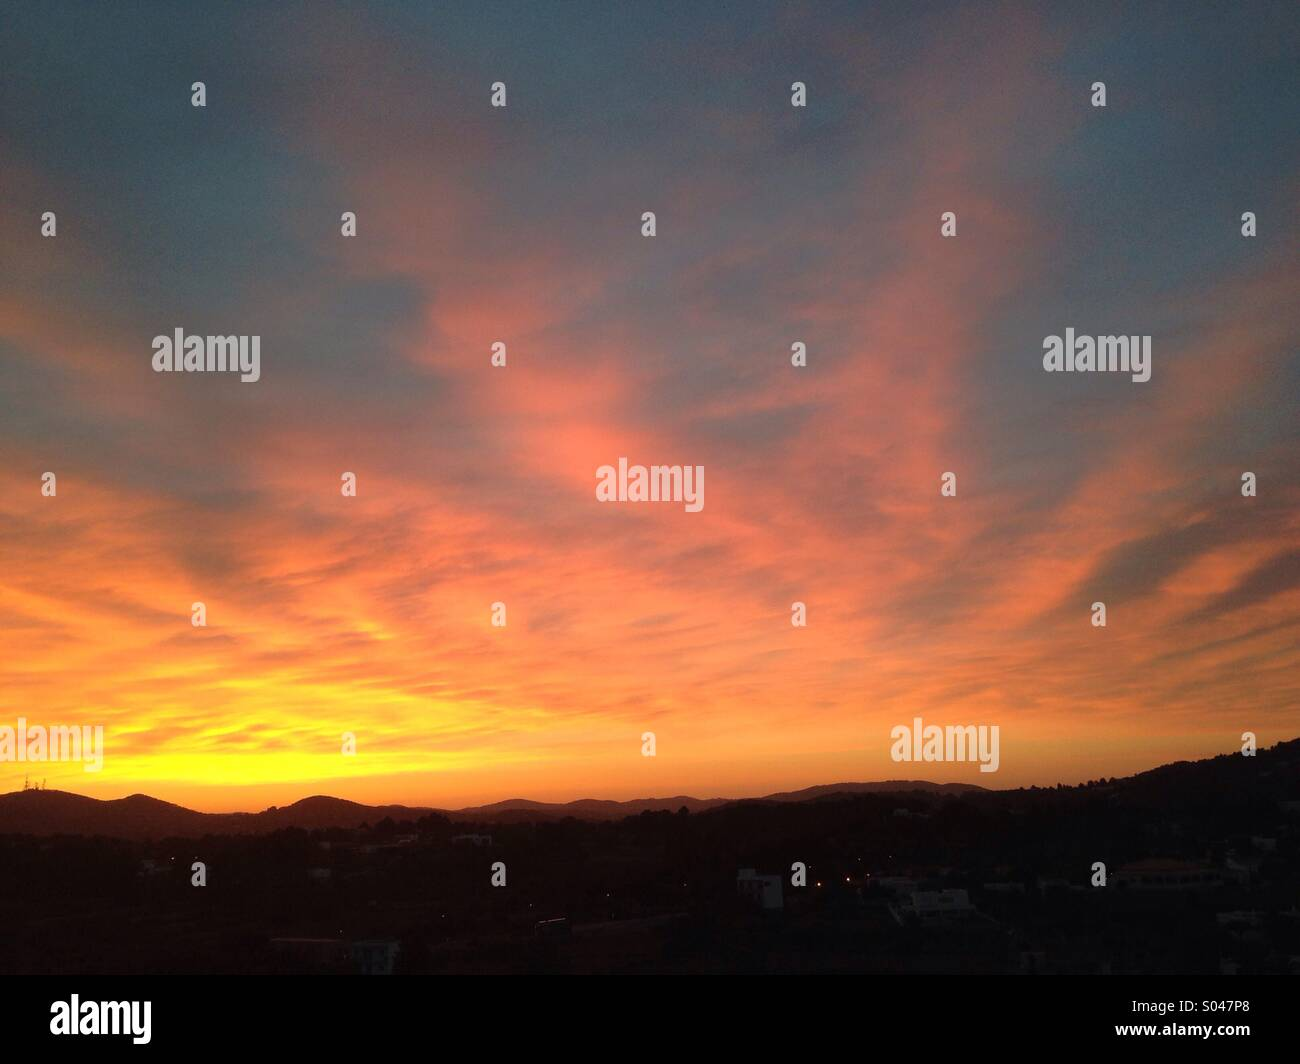 Ibiza sunset red, gold plumes. - Stock Image